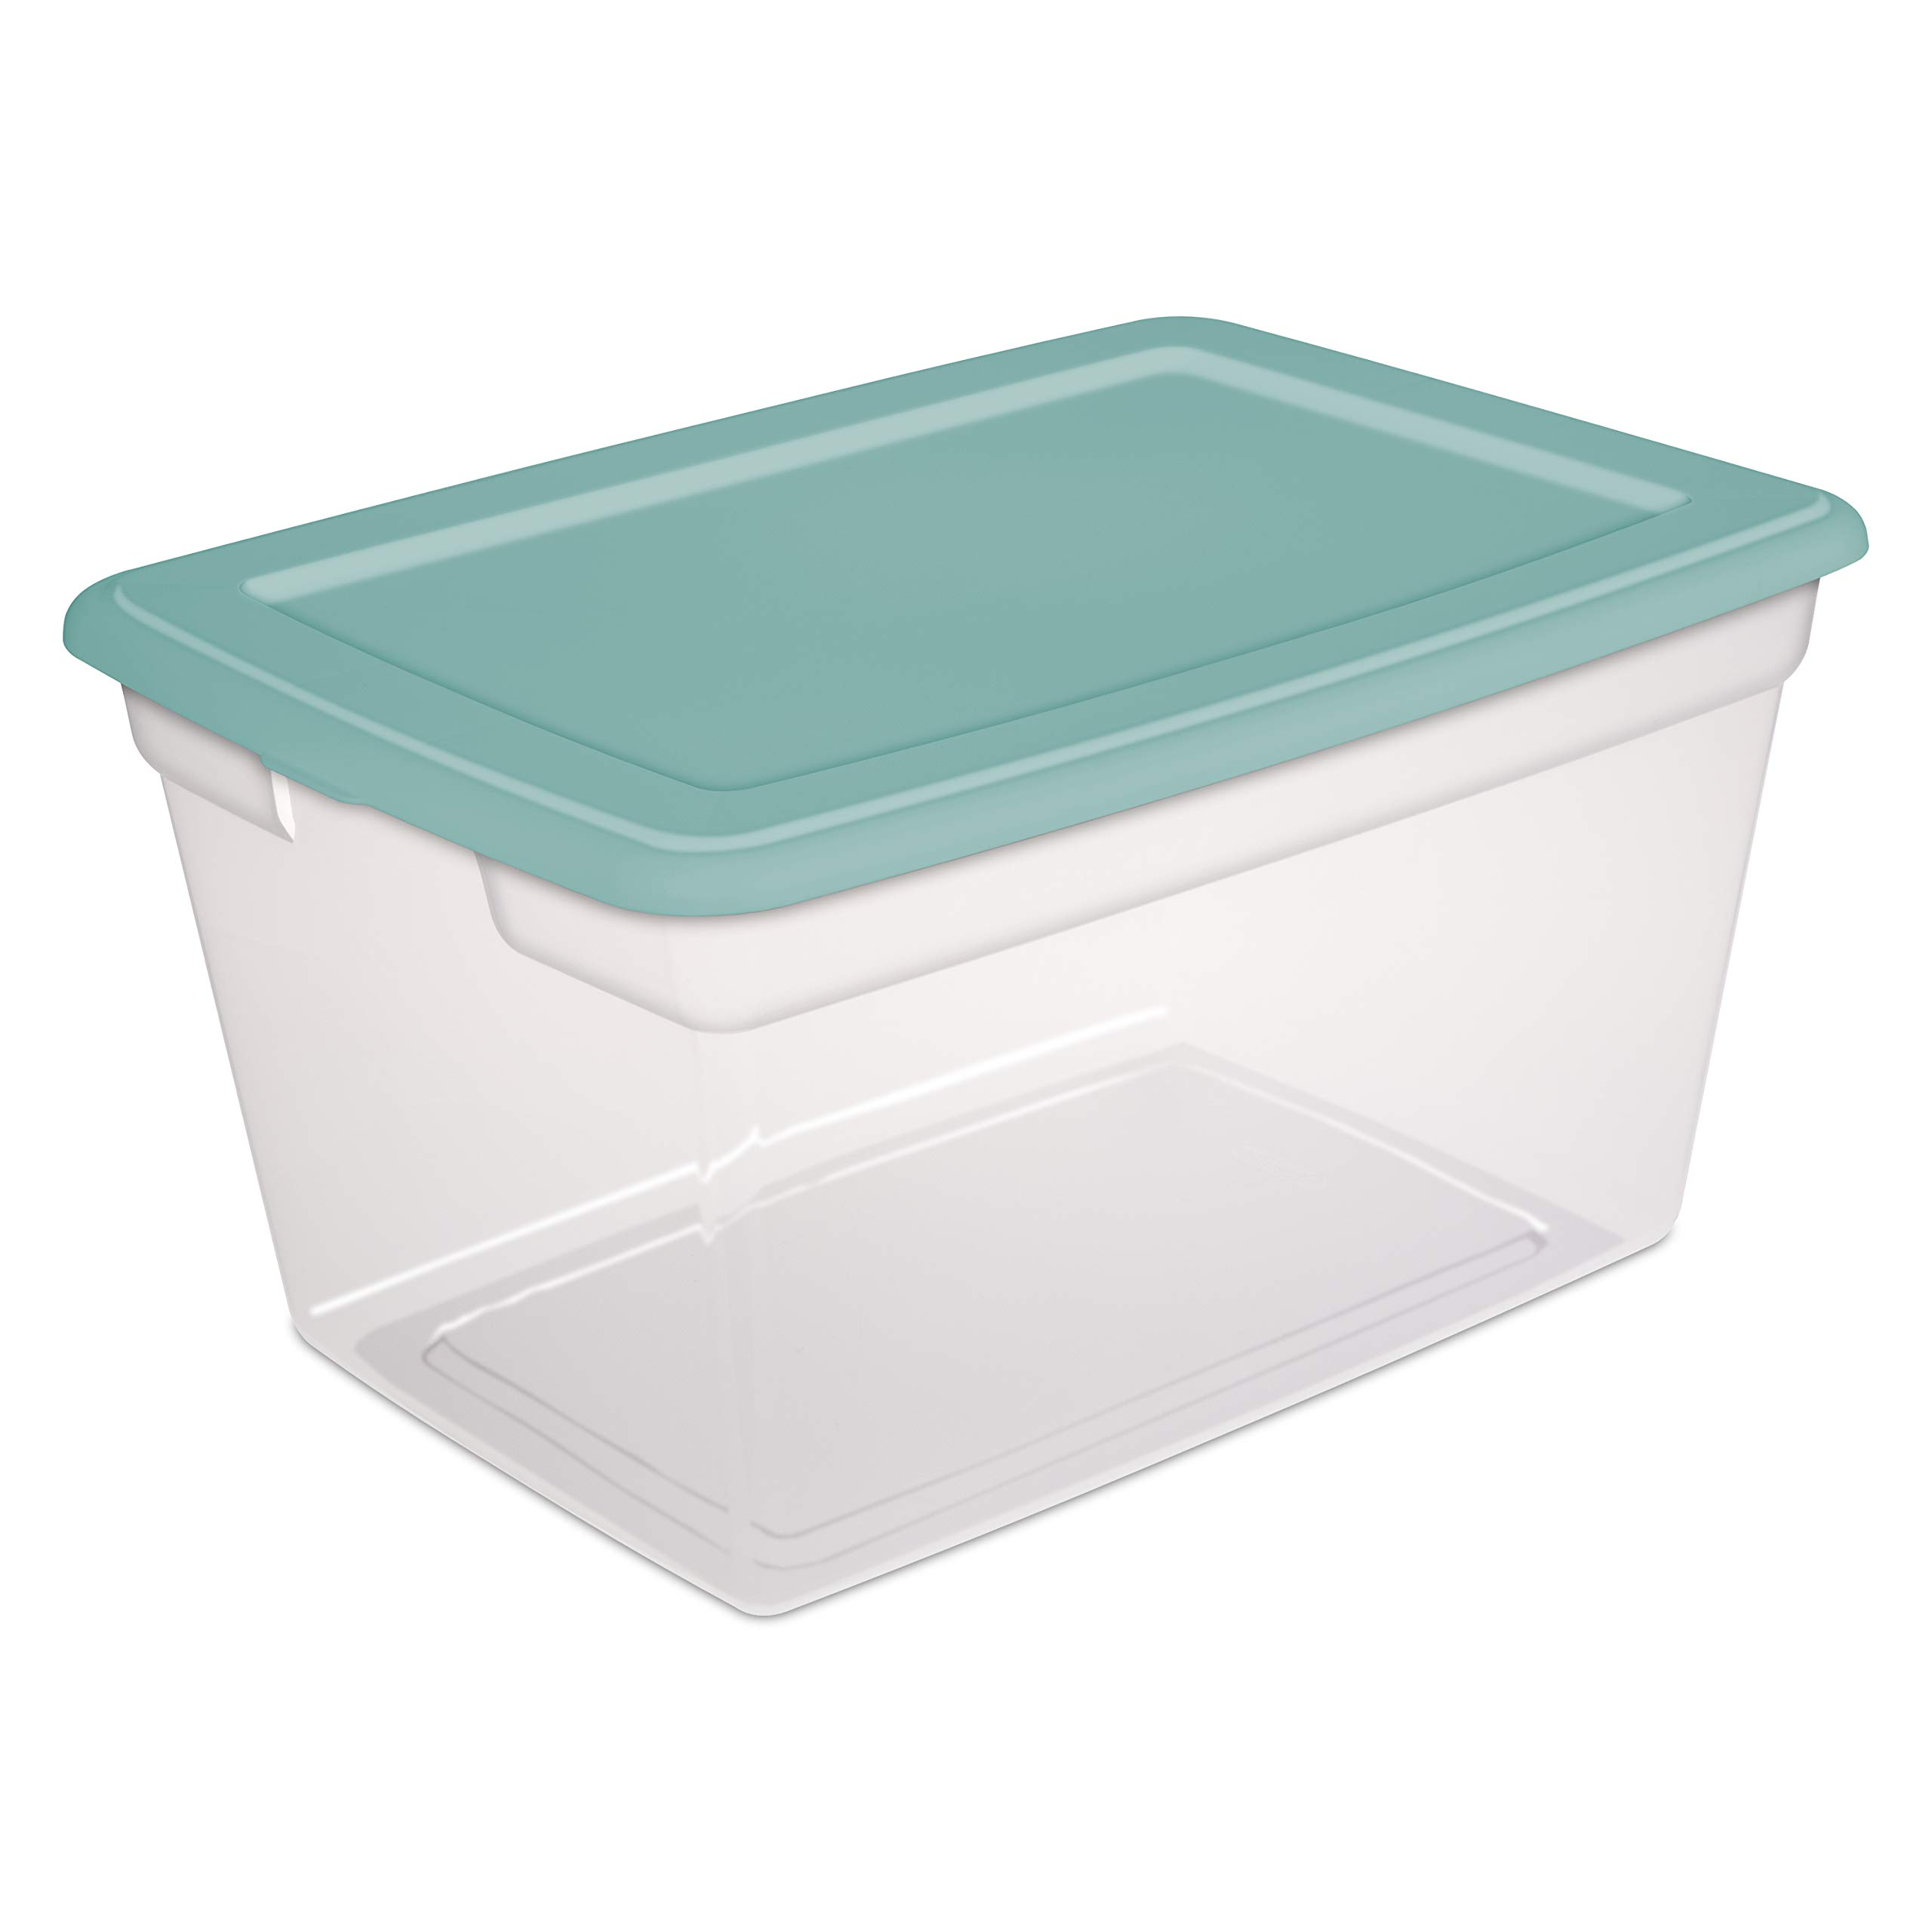 Sterilite 58 Quart Storage Box- Aqua Blue Tint, Set of 8